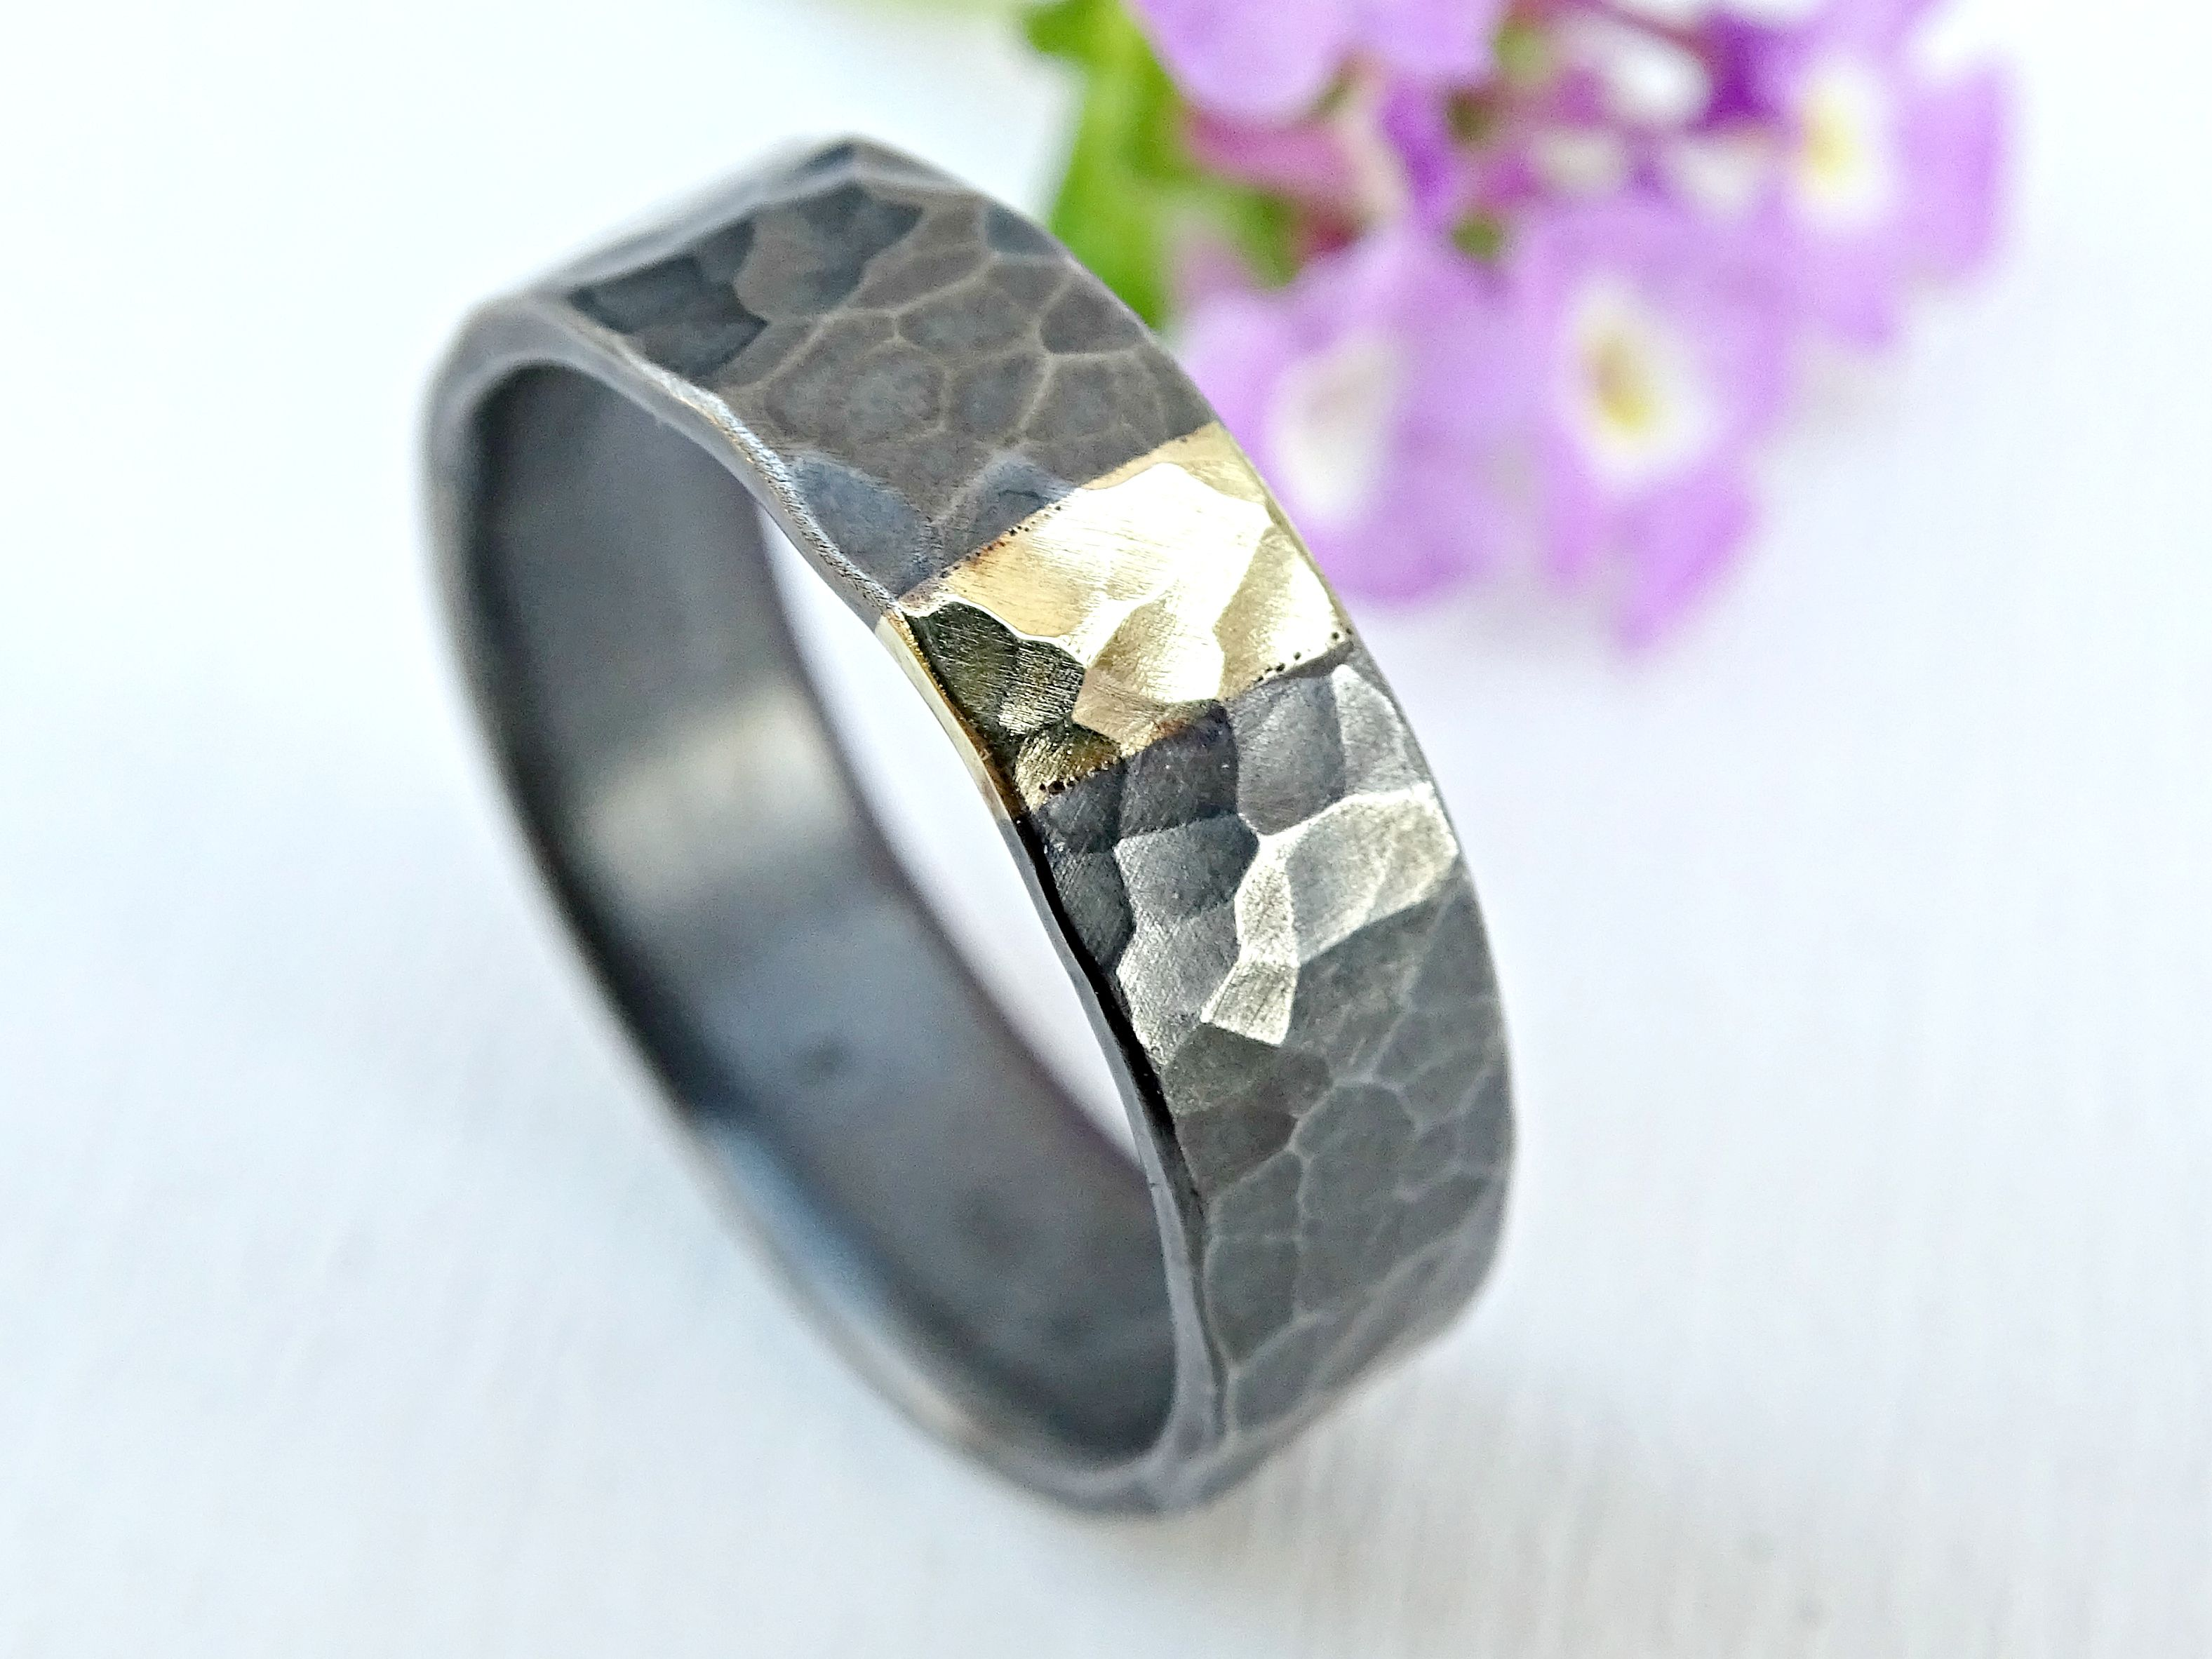 made and crazyassjewelry a hammered mens solid metal wedding tone two ring band silver buy gold mixed custom rings by ri